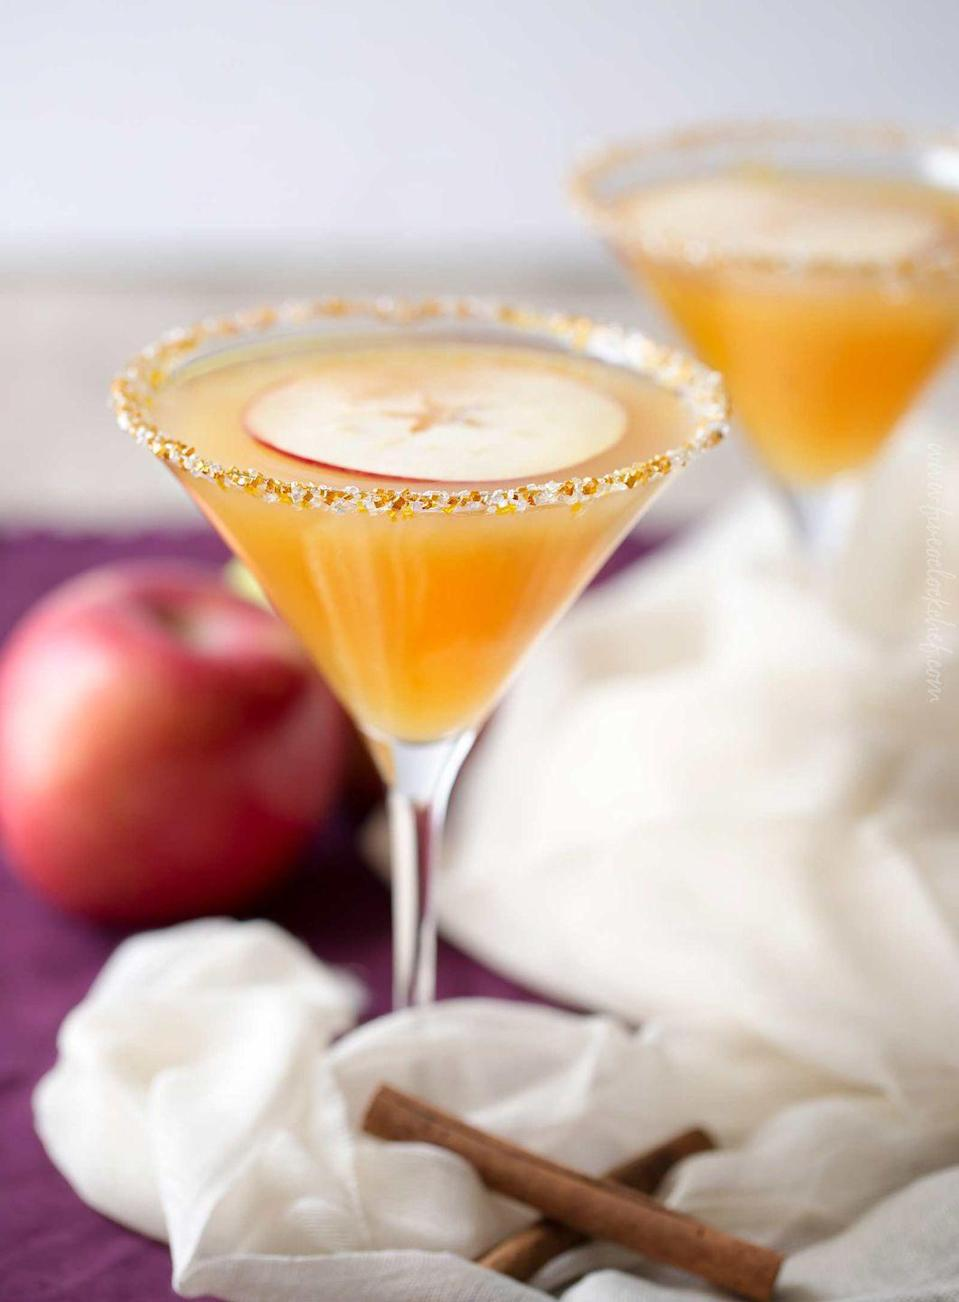 """<p>How gorgeous is this caramel apple martini? The glass is rimmed with caramel sauce and edible glitter!</p><p><strong>Get the recipe at <a href=""""https://www.thechunkychef.com/spiced-caramel-apple-martini/"""" rel=""""nofollow noopener"""" target=""""_blank"""" data-ylk=""""slk:The Chunky Chef"""" class=""""link rapid-noclick-resp"""">The Chunky Chef</a>.</strong></p><p><a class=""""link rapid-noclick-resp"""" href=""""https://go.redirectingat.com?id=74968X1596630&url=https%3A%2F%2Fwww.walmart.com%2Fsearch%2F%3Fquery%3Dmartini%2Bglasses&sref=https%3A%2F%2Fwww.thepioneerwoman.com%2Ffood-cooking%2Fmeals-menus%2Fg33510531%2Ffall-cocktail-recipes%2F"""" rel=""""nofollow noopener"""" target=""""_blank"""" data-ylk=""""slk:SHOP MARTINI GLASSES"""">SHOP MARTINI GLASSES</a> </p>"""